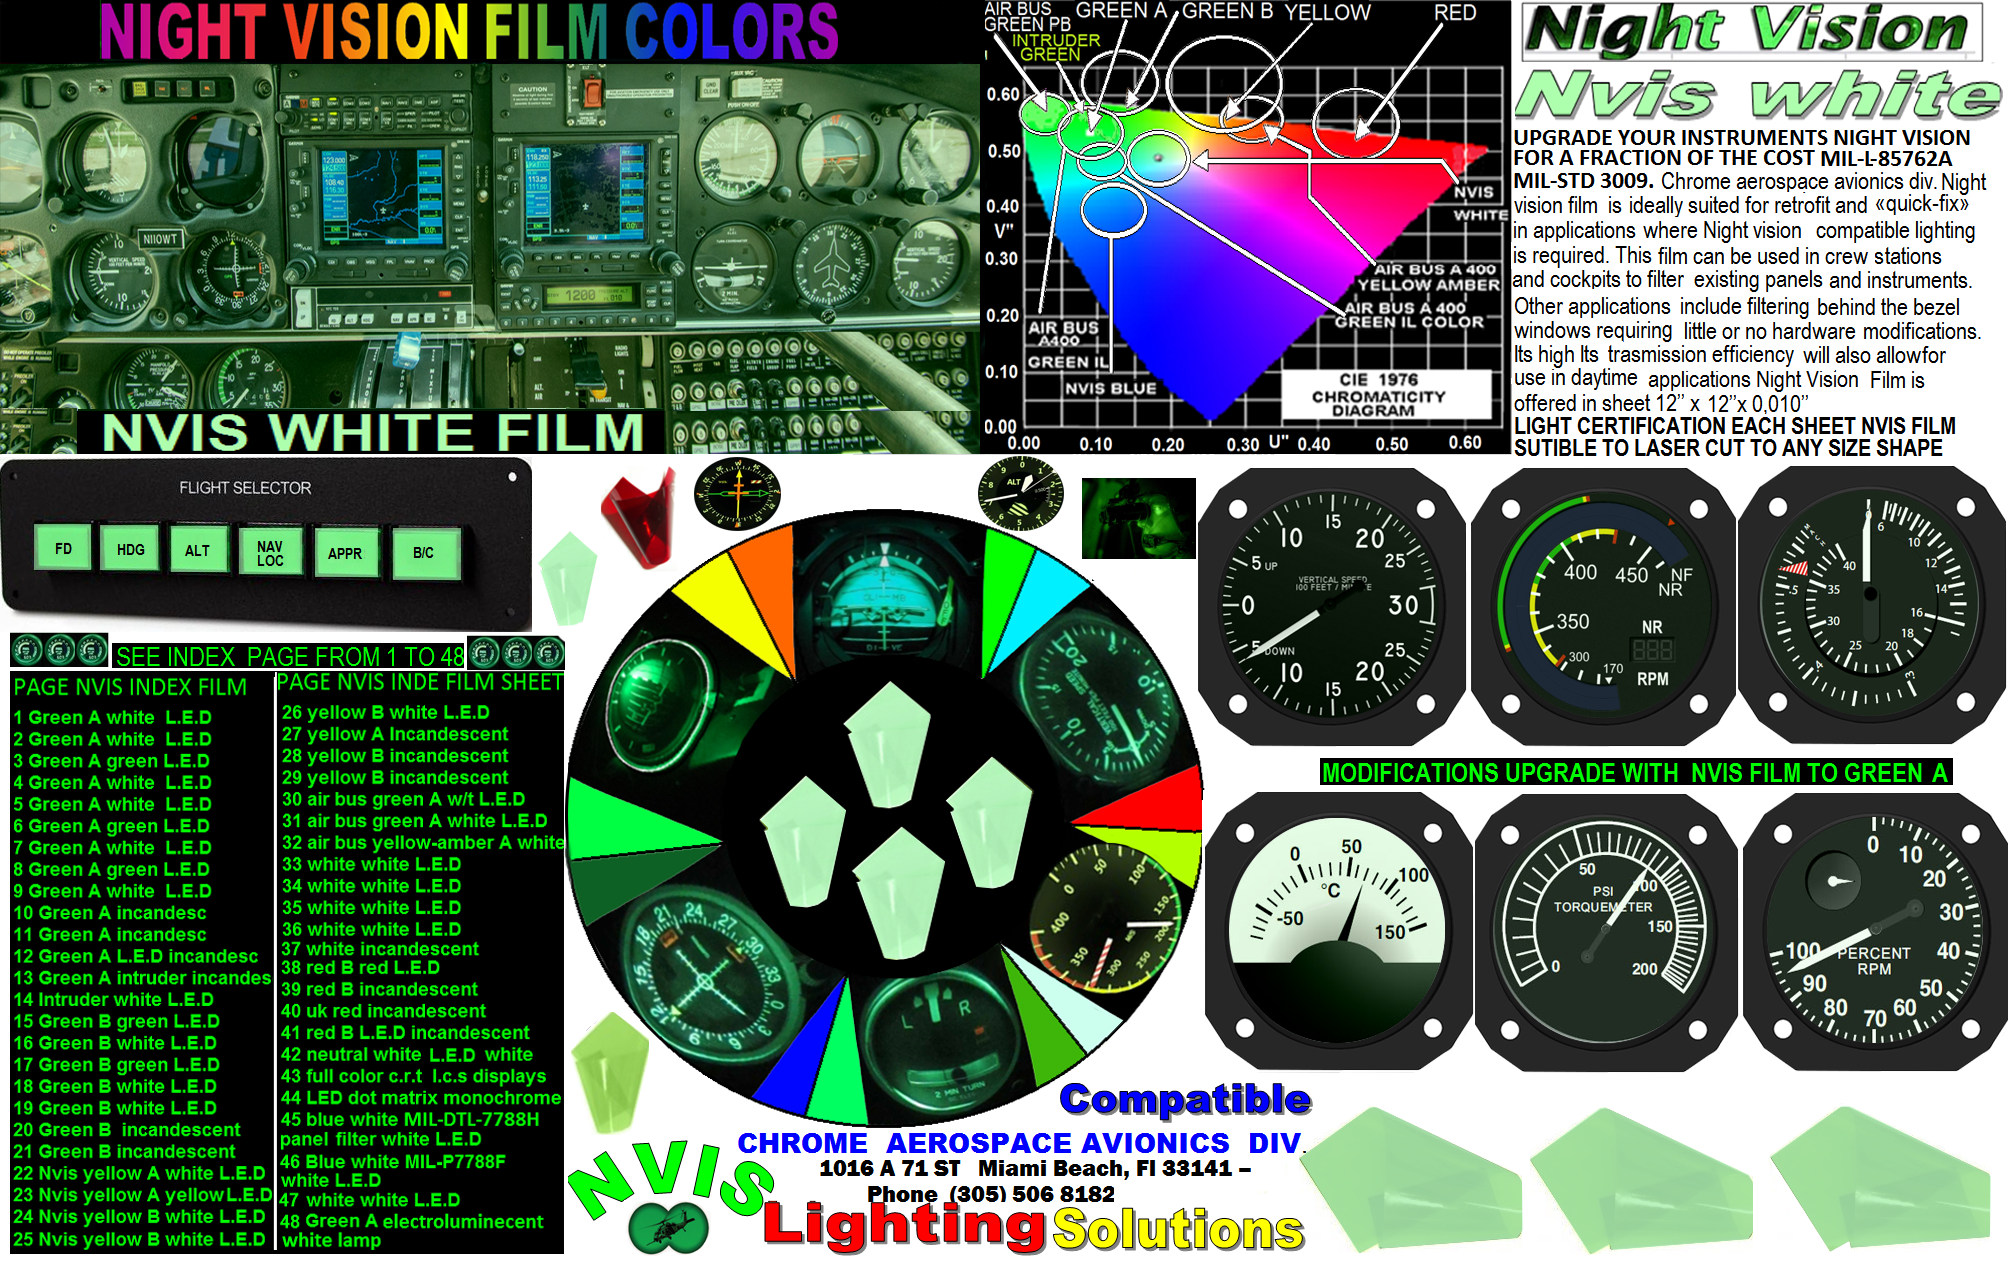 18  NVIS WHITE  FILM UPGRADE CONVERSION INSTRUMENTS  4-24-20.png